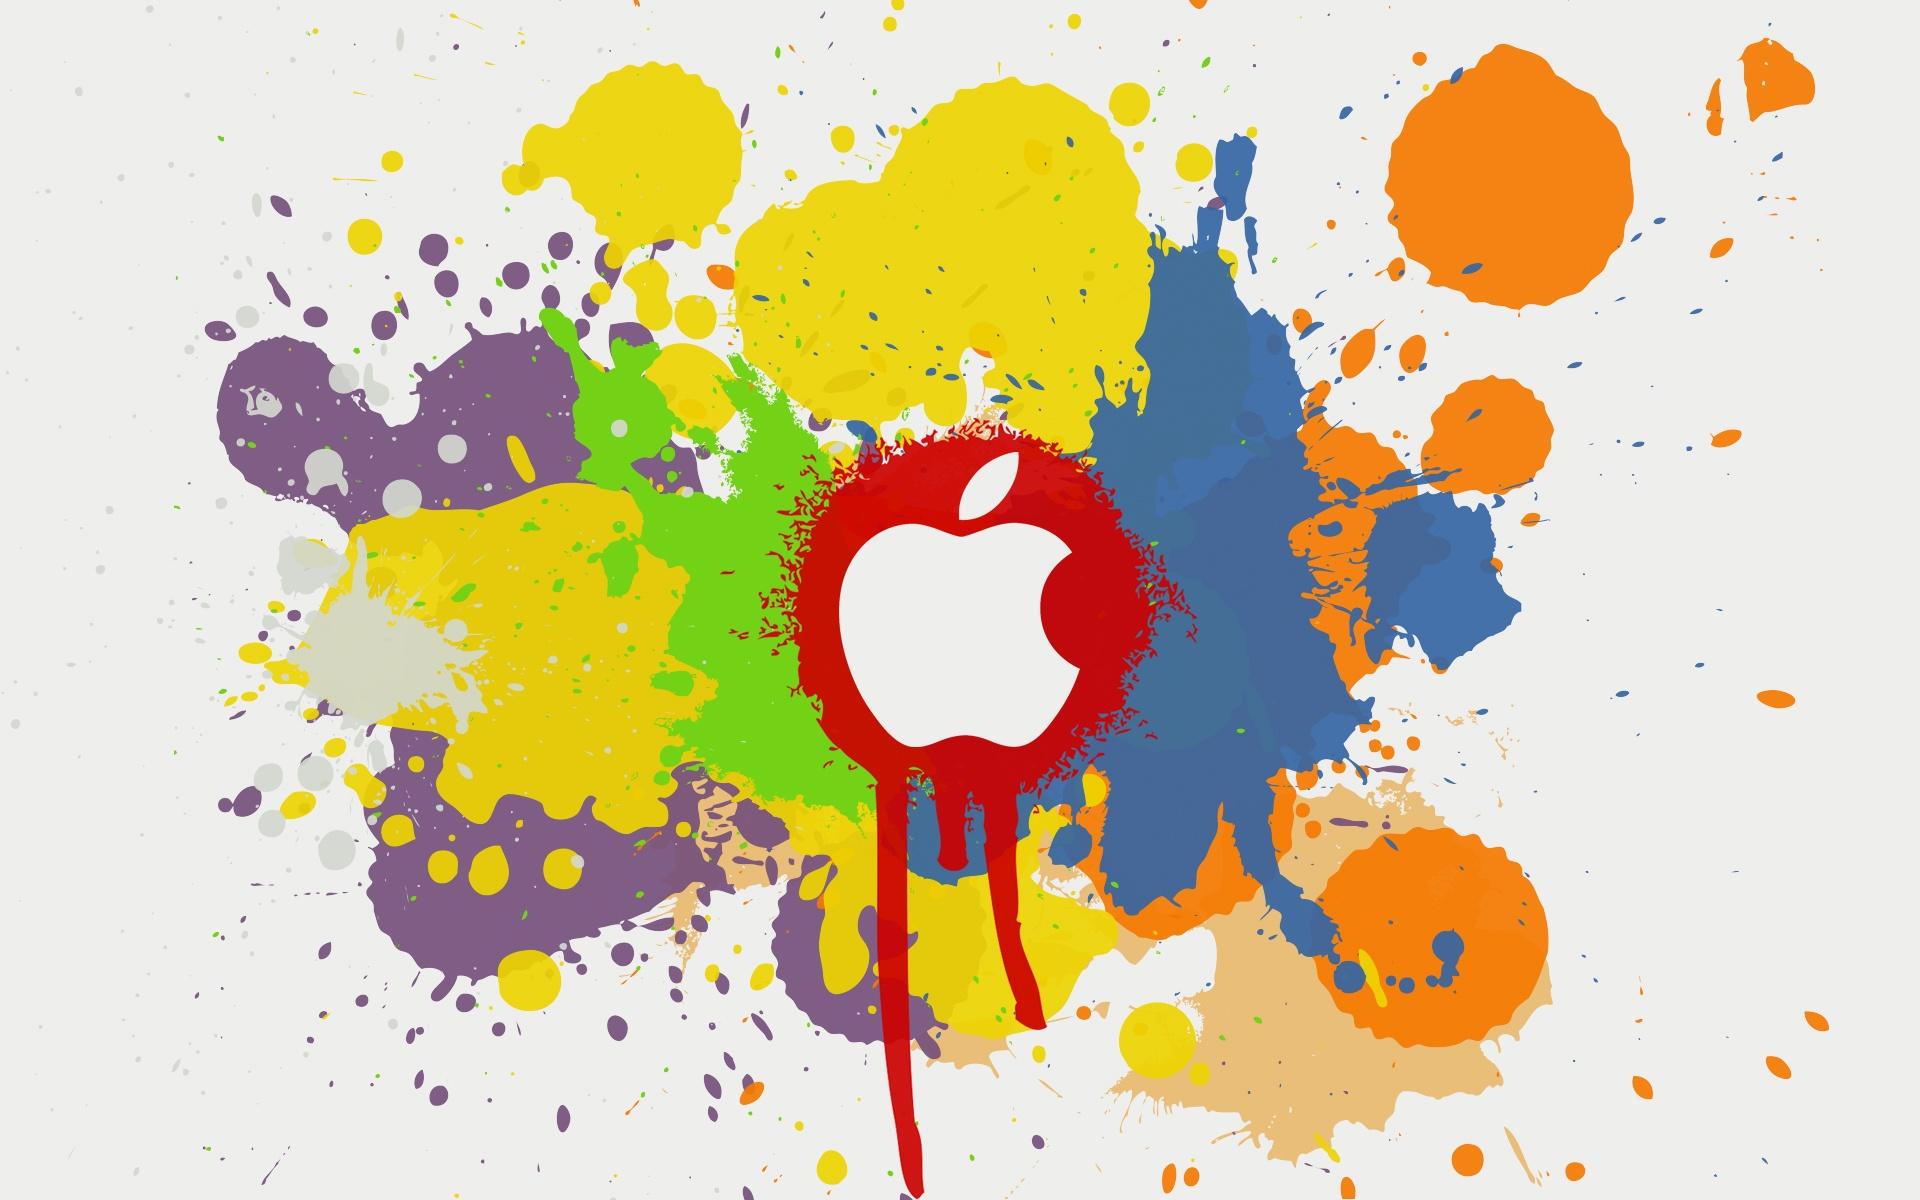 colors apple wallpapers in jpg format for free download